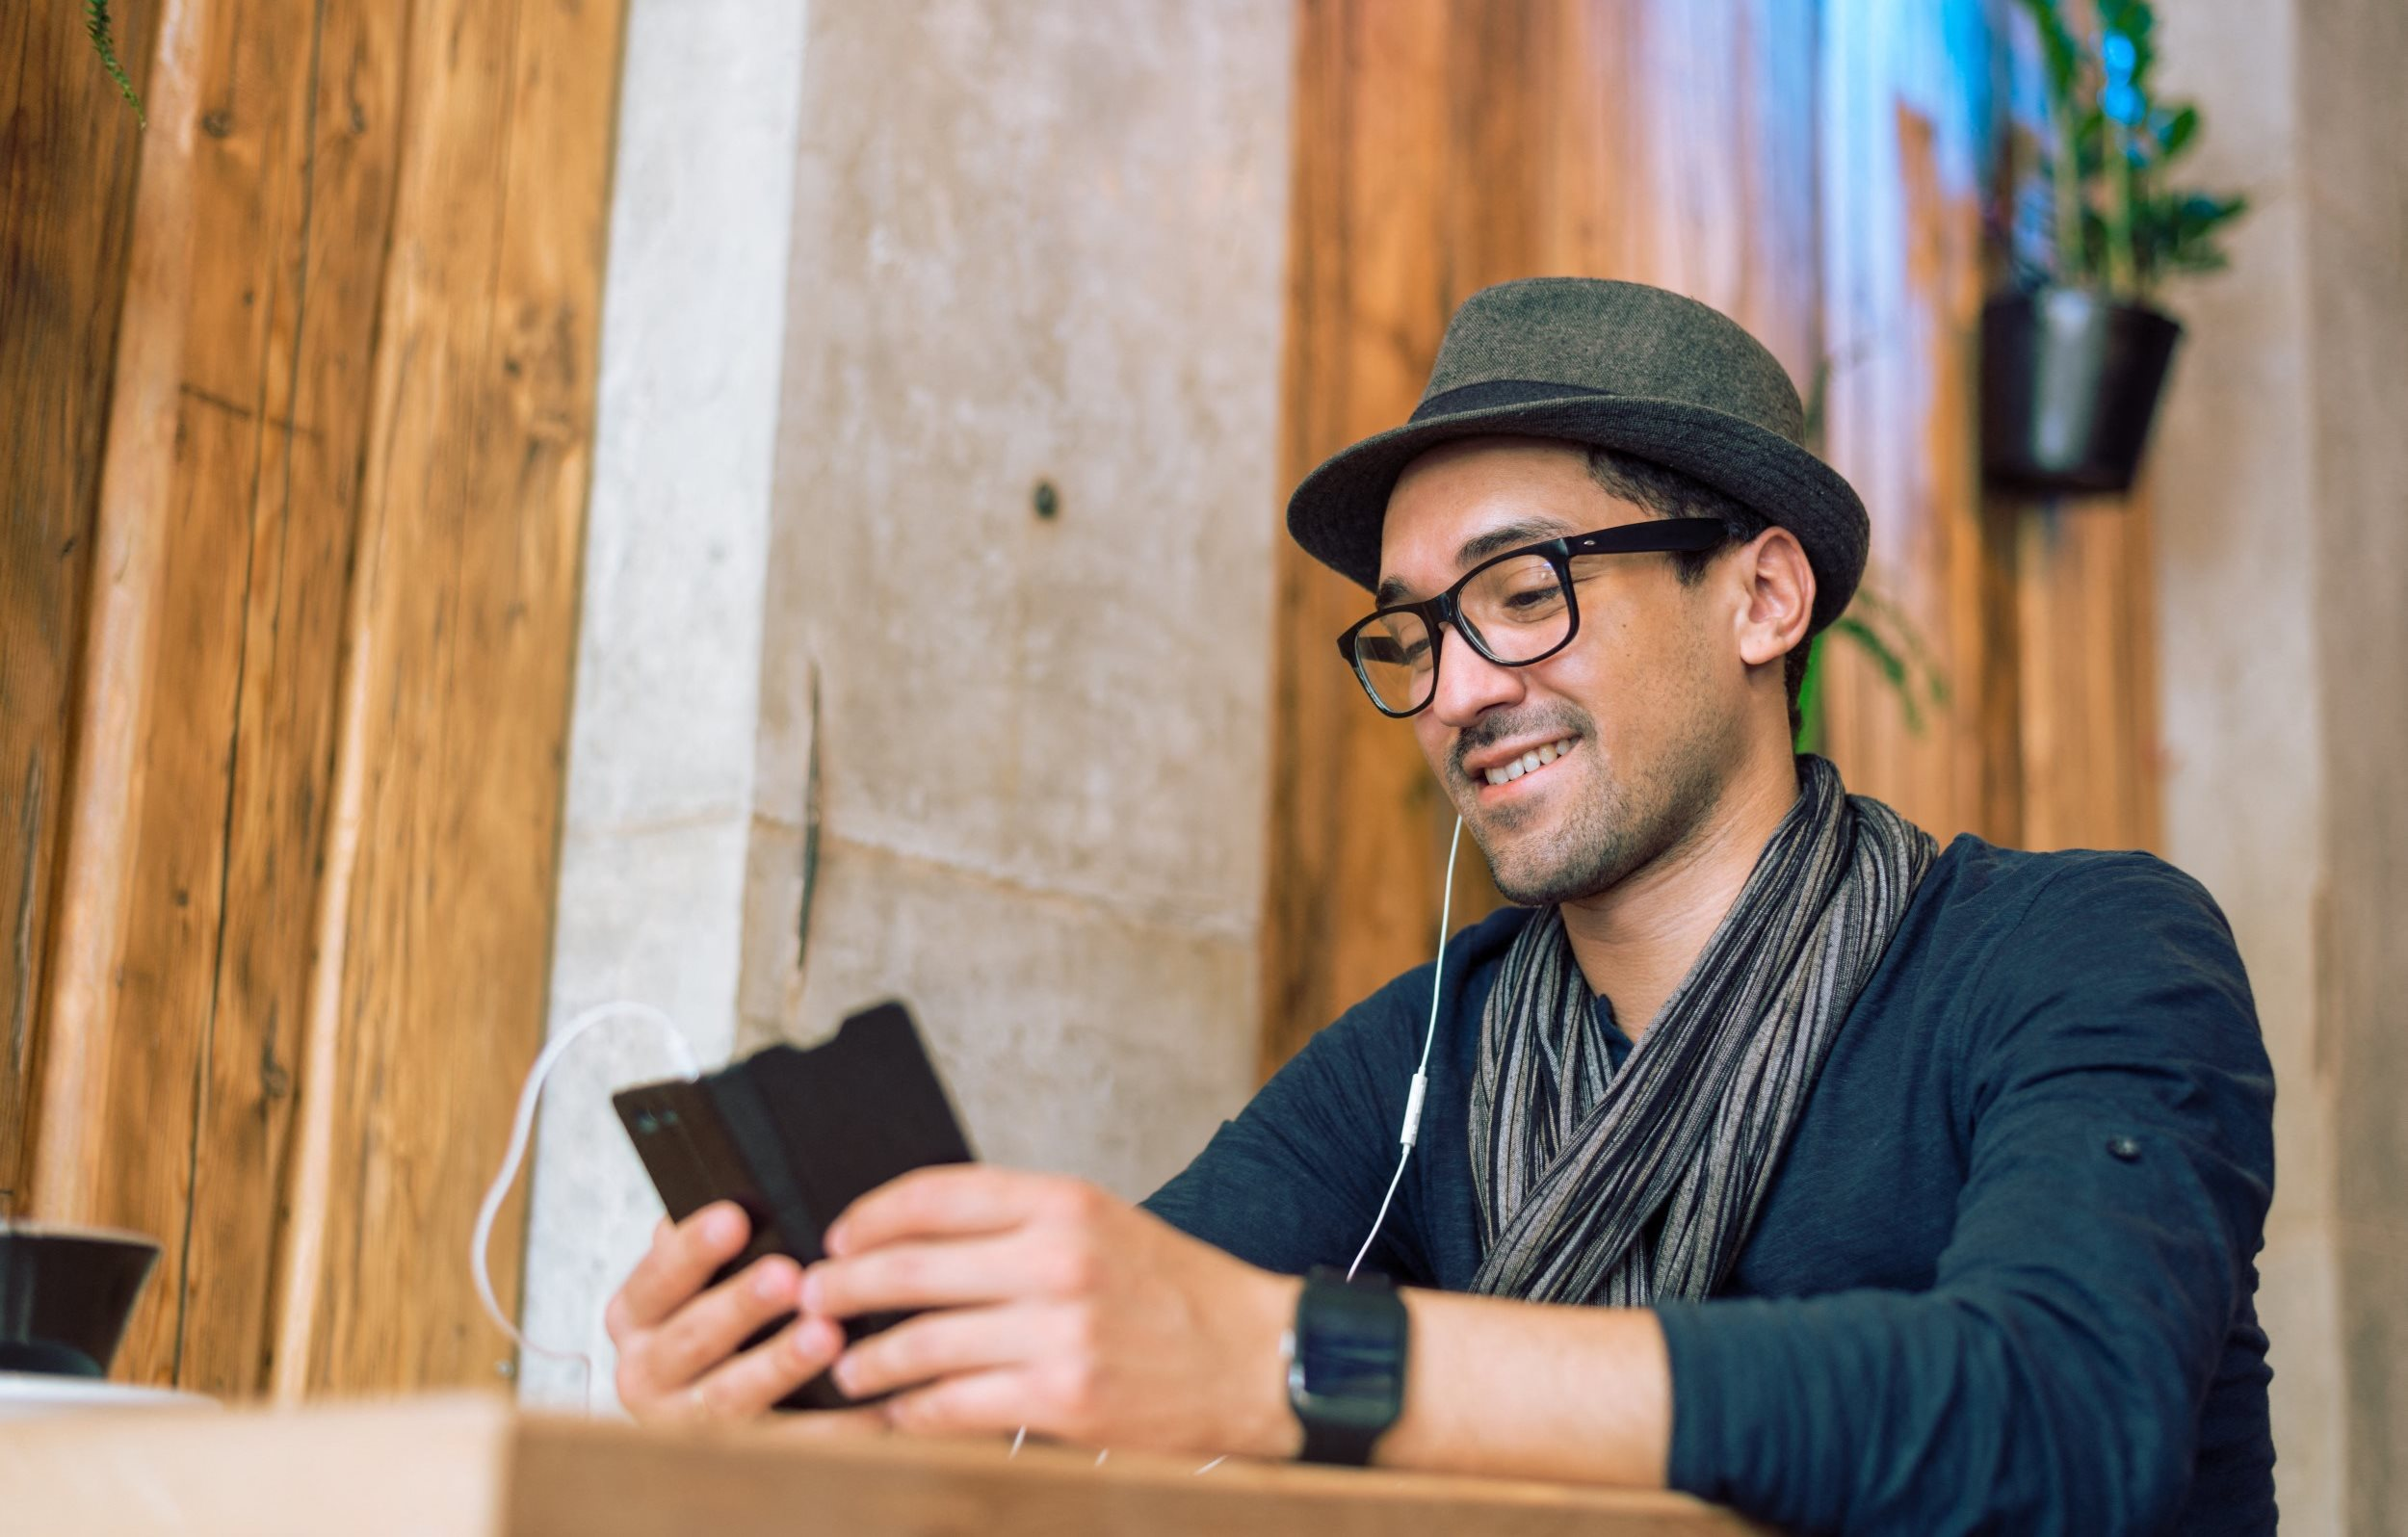 Man Sitting At Table Looking at Smartphone